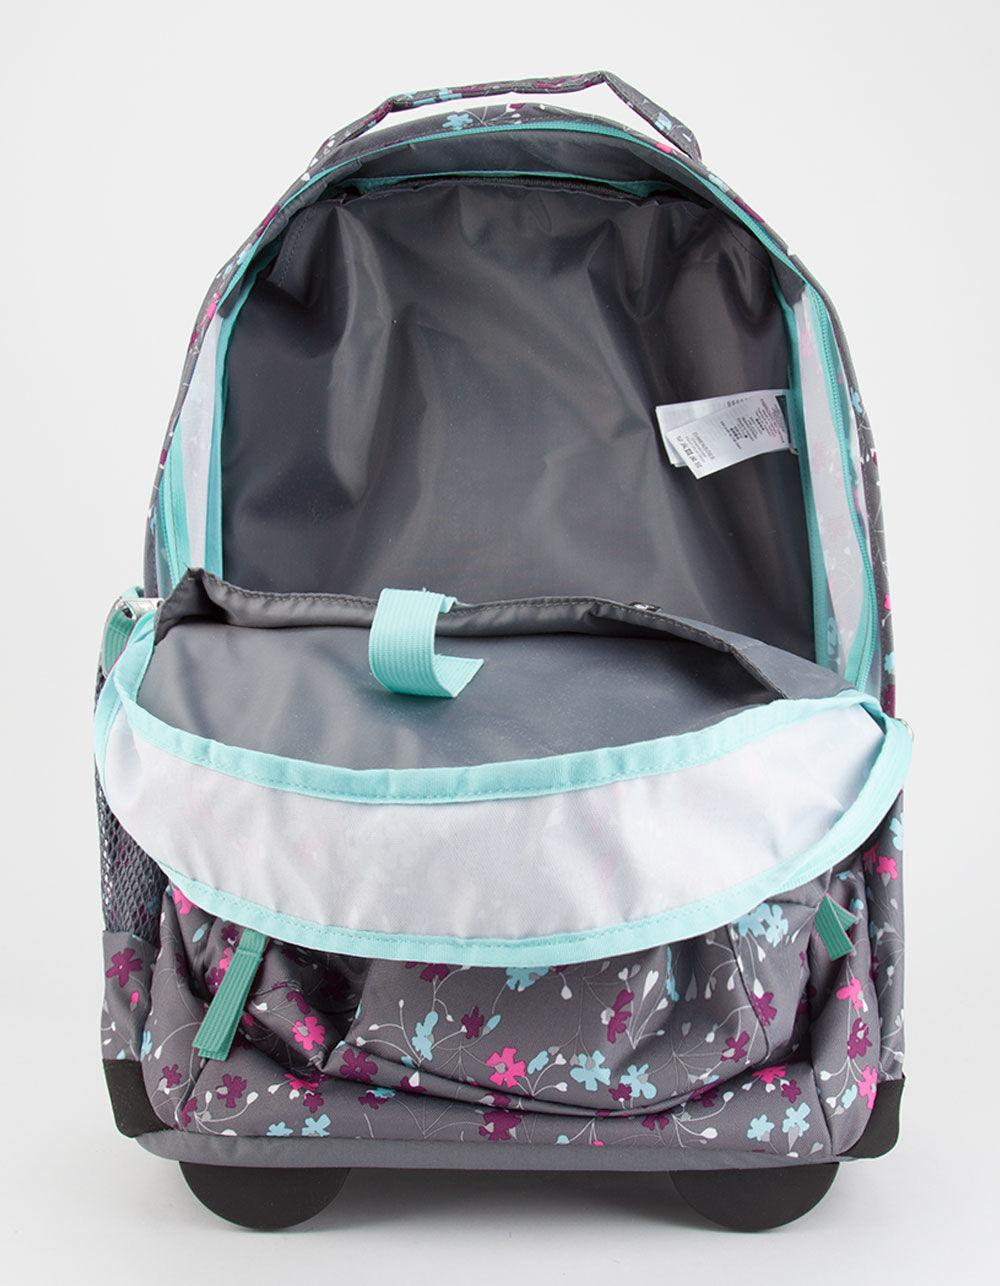 Jansport Backpack Canada Warranty | Fitzpatrick Painting